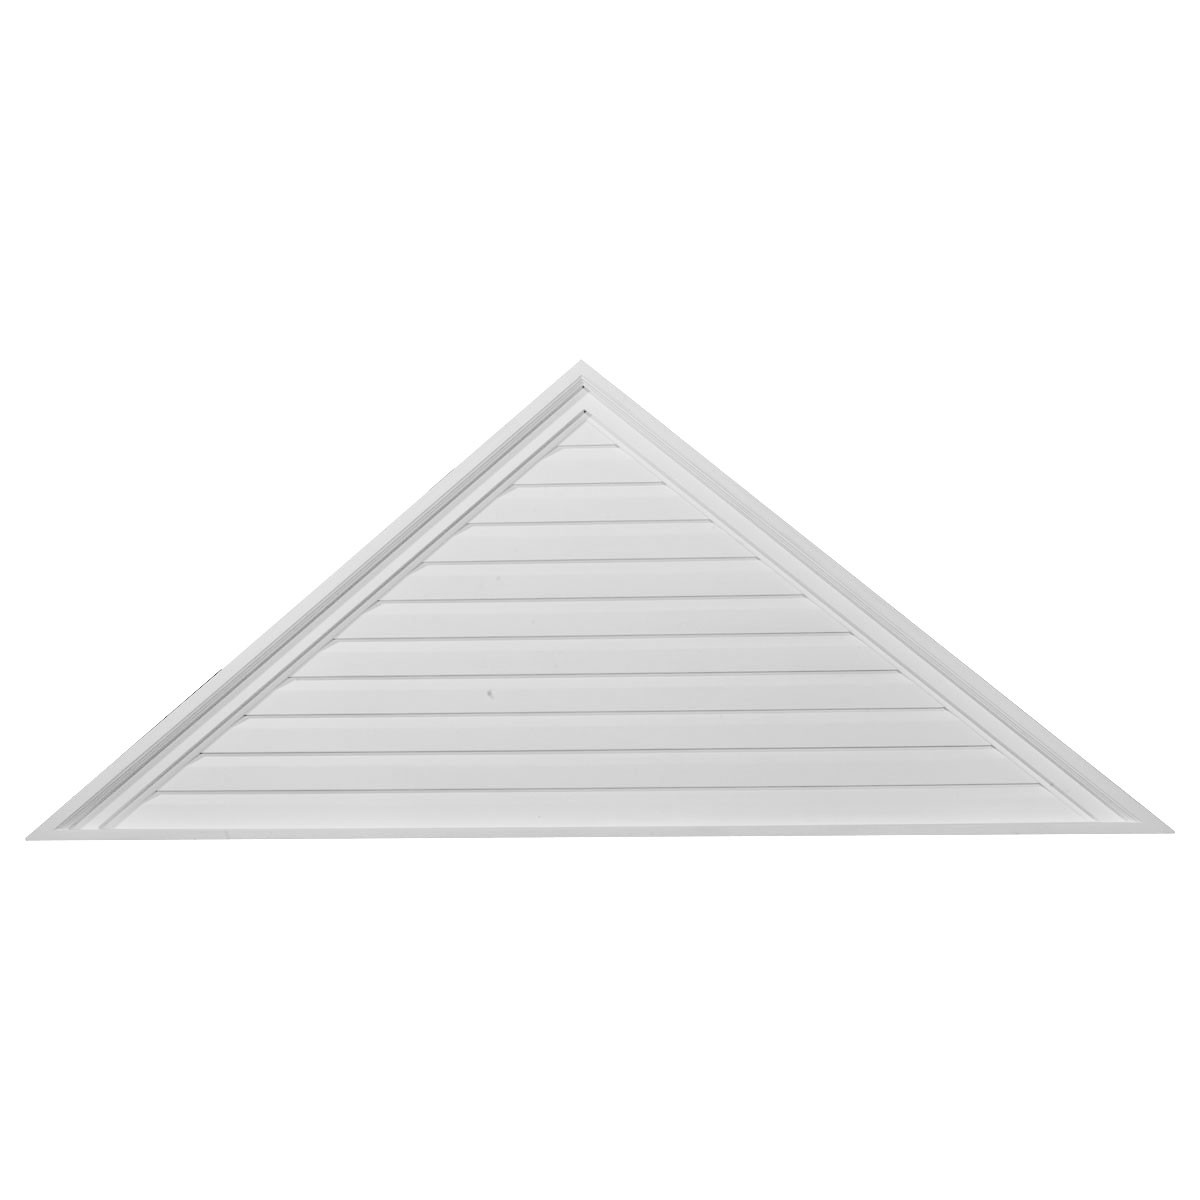 """EM-GVTR65X21F - 65""""W x 21 3/4""""H x 2 1/4""""P,  Pitch 8/12 Triangle Gable Vent, Functional"""